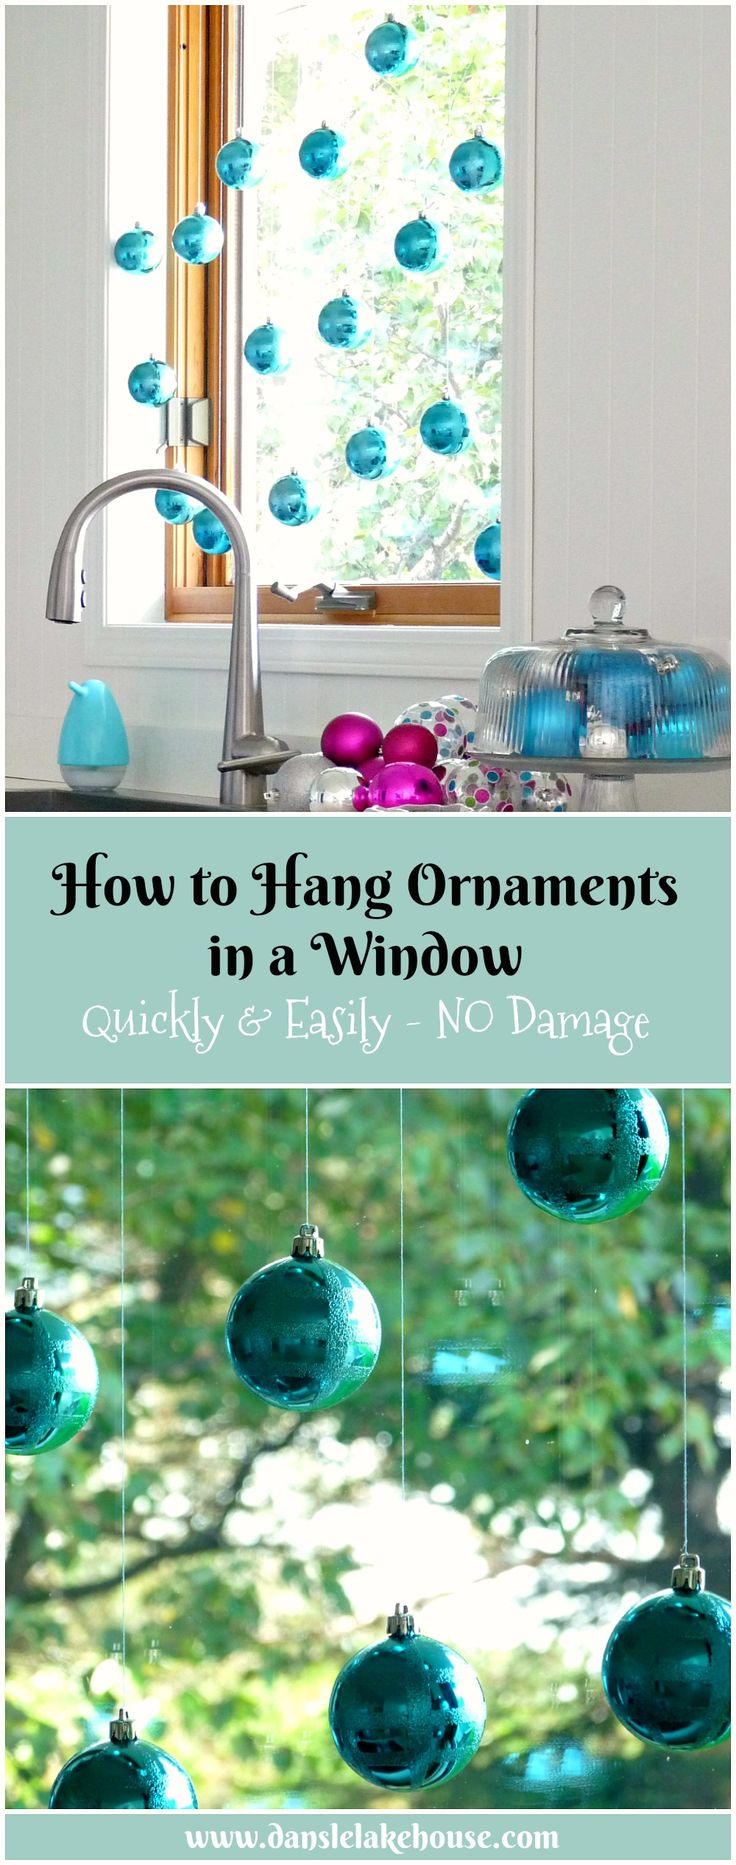 How to Hang Christmas Ornaments in a Window without Causing Any Damage // Click Through for More Great Ways to Display Ornaments Around the House